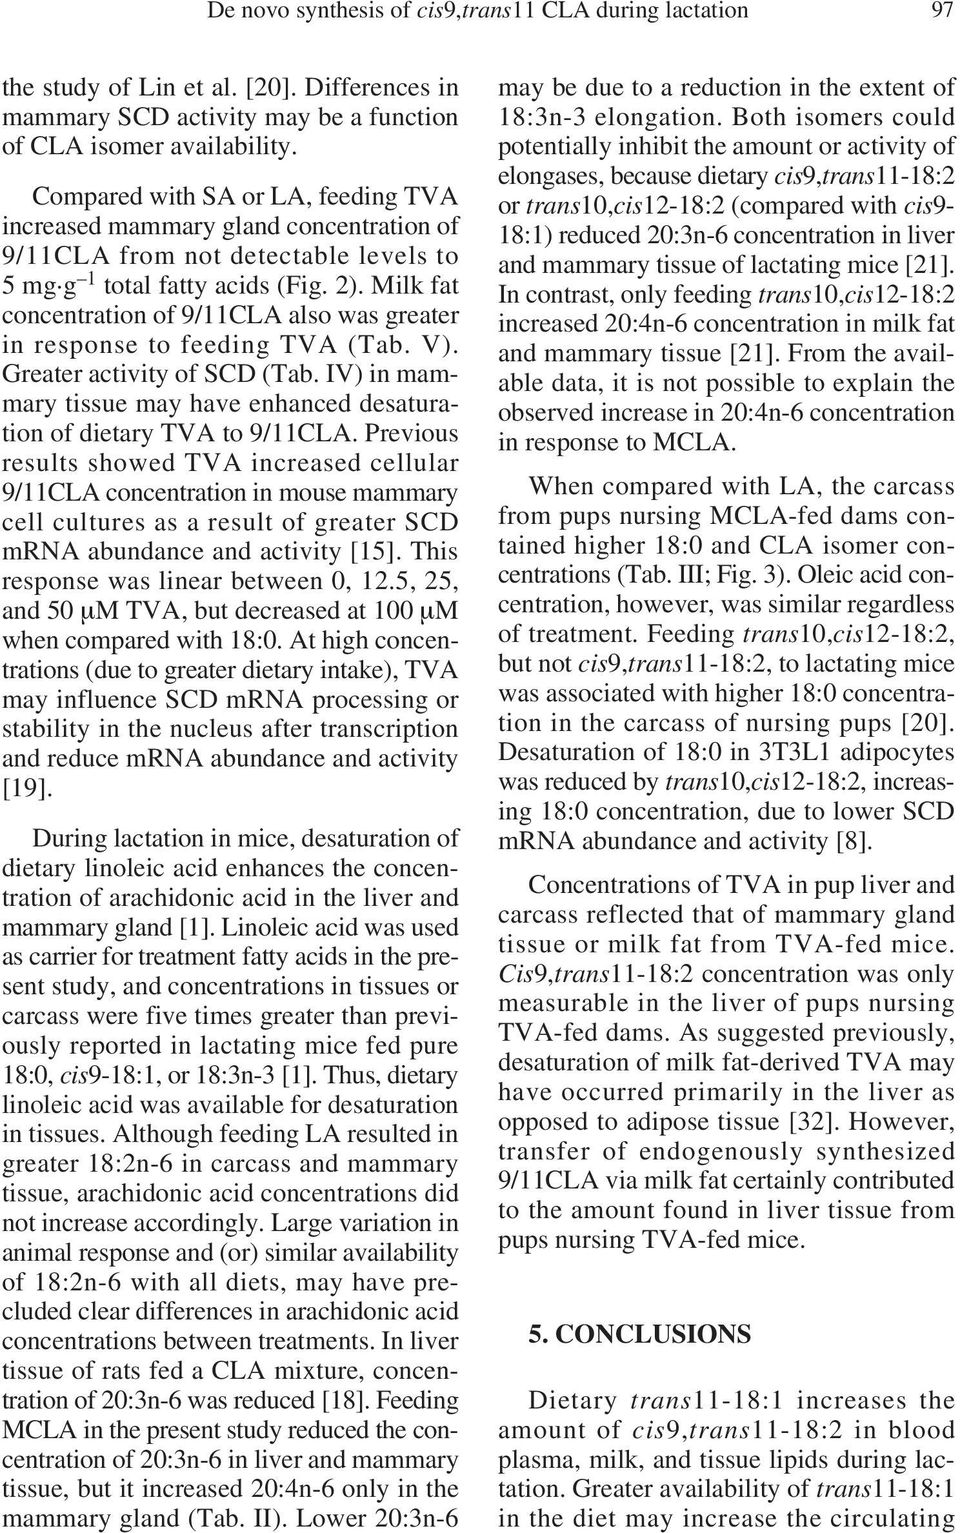 Milk fat concentration of 9/11CLA also was greater in response to feeding TVA (Tab. V). Greater activity of SCD (Tab. IV) in mammary tissue may have enhanced desaturation of dietary TVA to 9/11CLA.